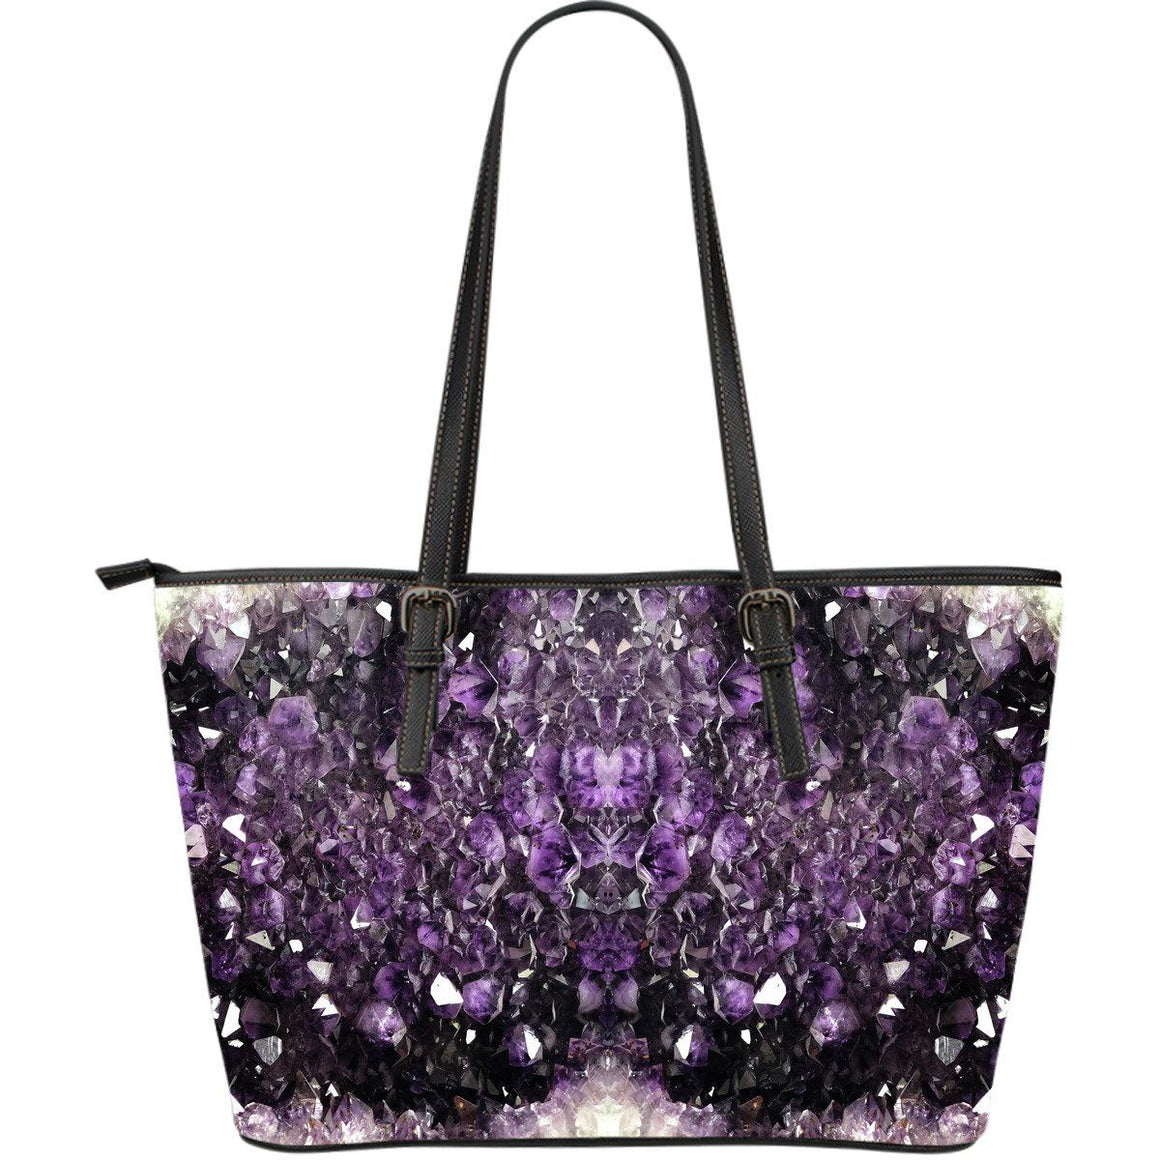 Amethyst Visions - Big artificial leather bag